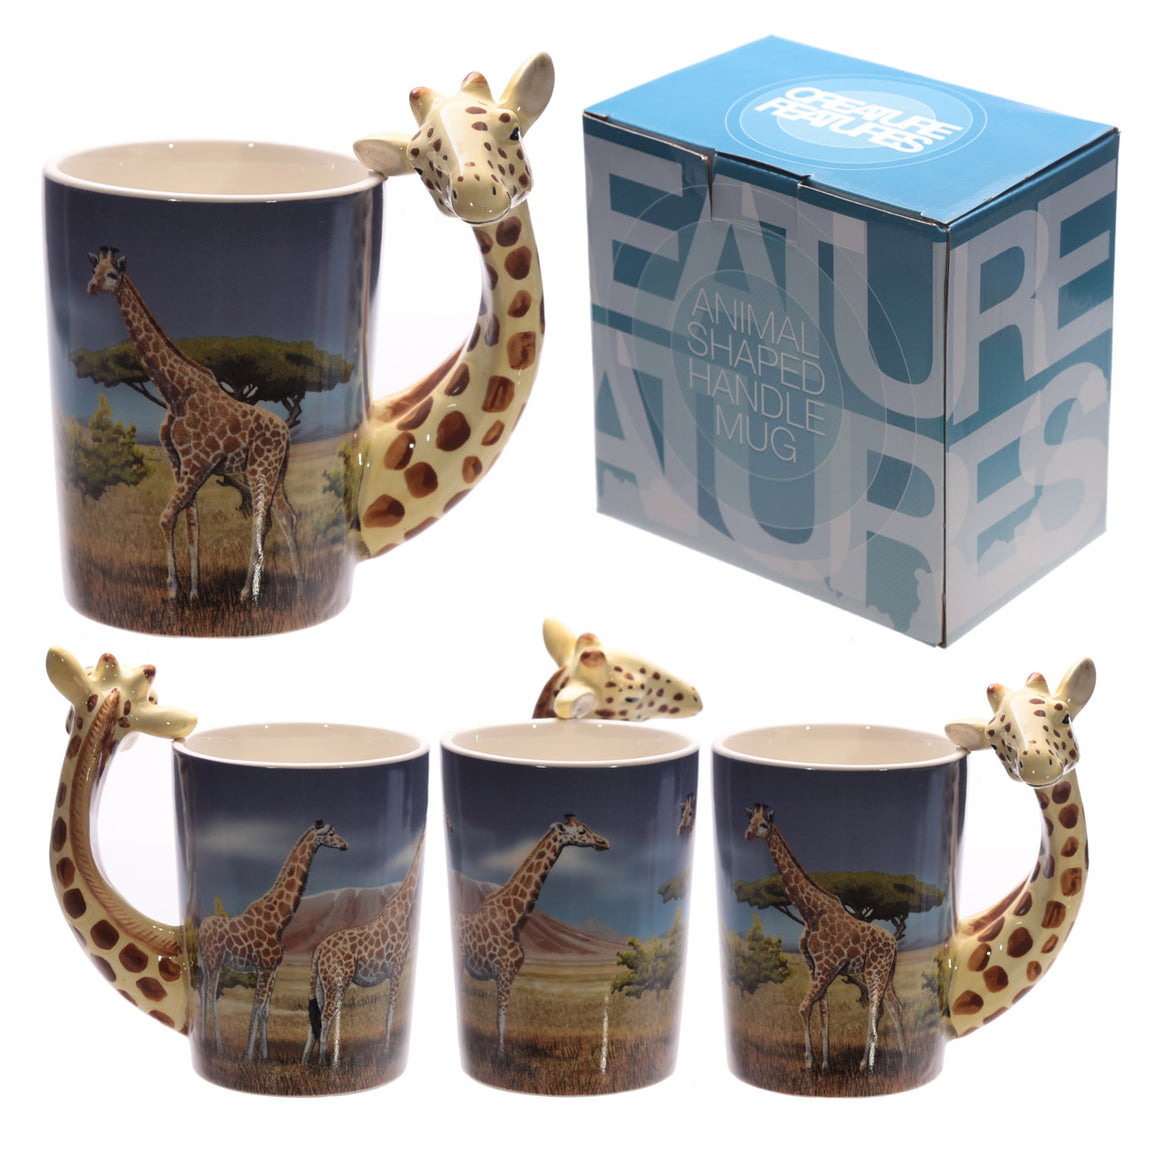 Ceramic Safari Printed Mug with Giraffe Head Handle